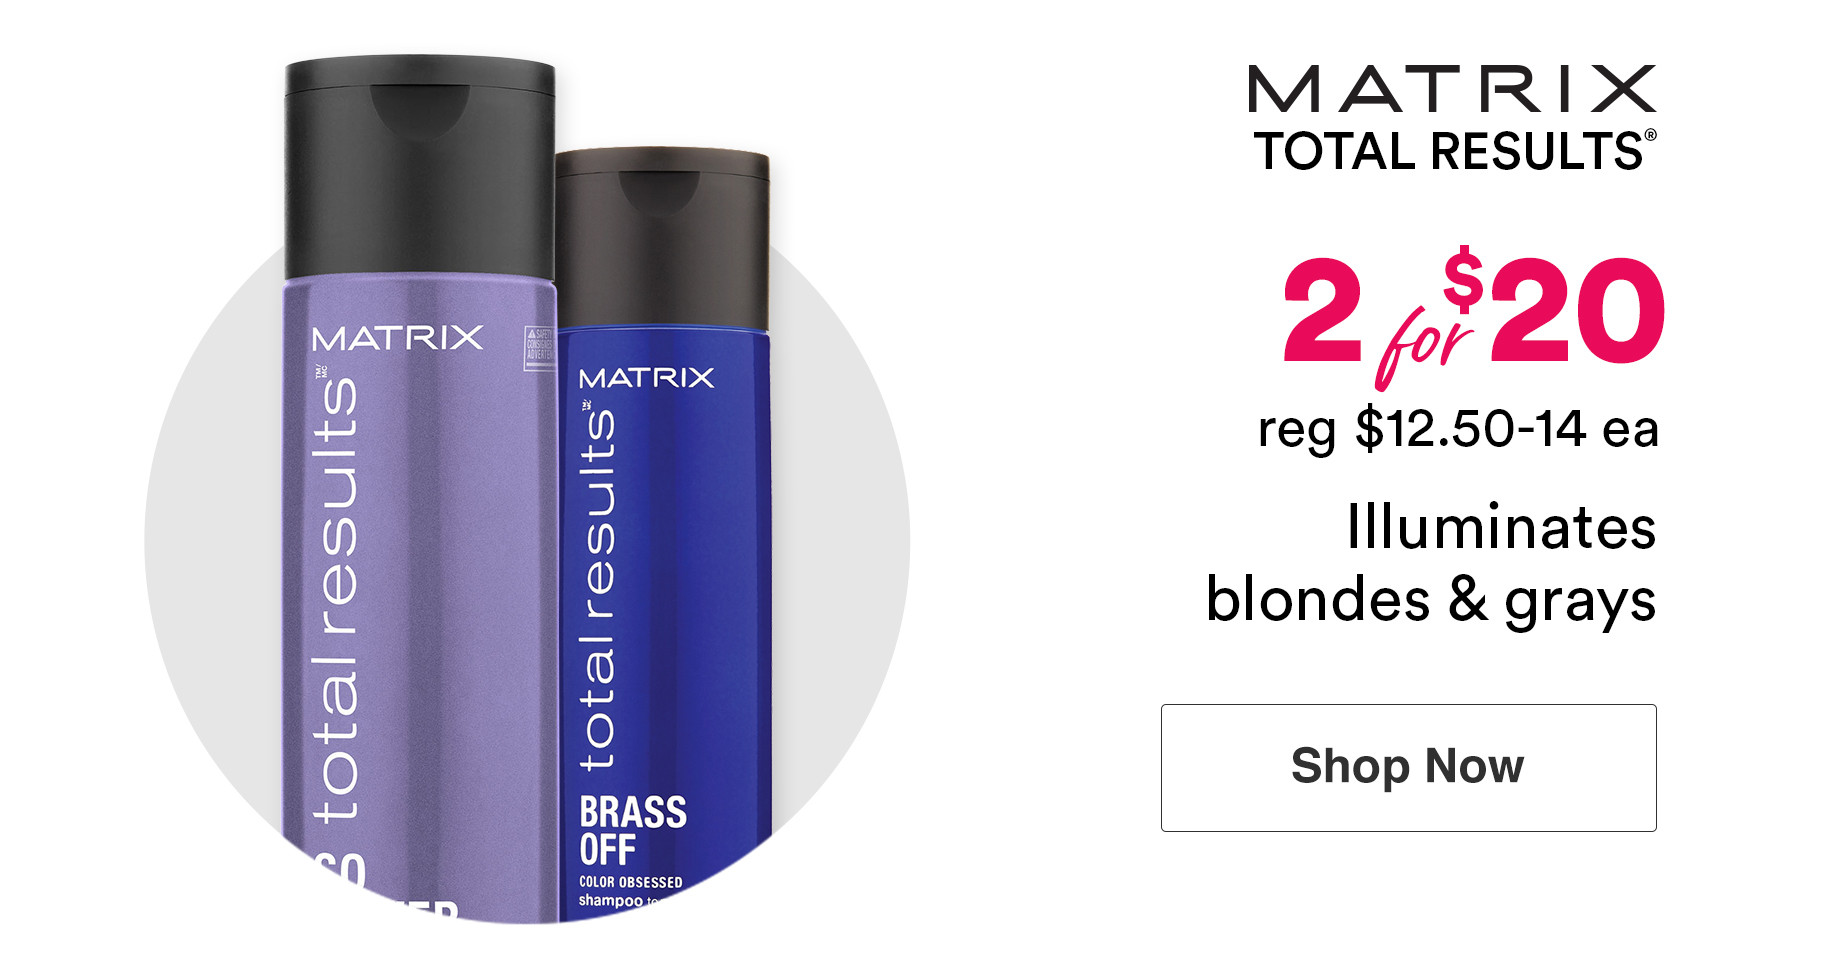 Matrix Total Results Shampoos and Conditioners are now 2 for $20